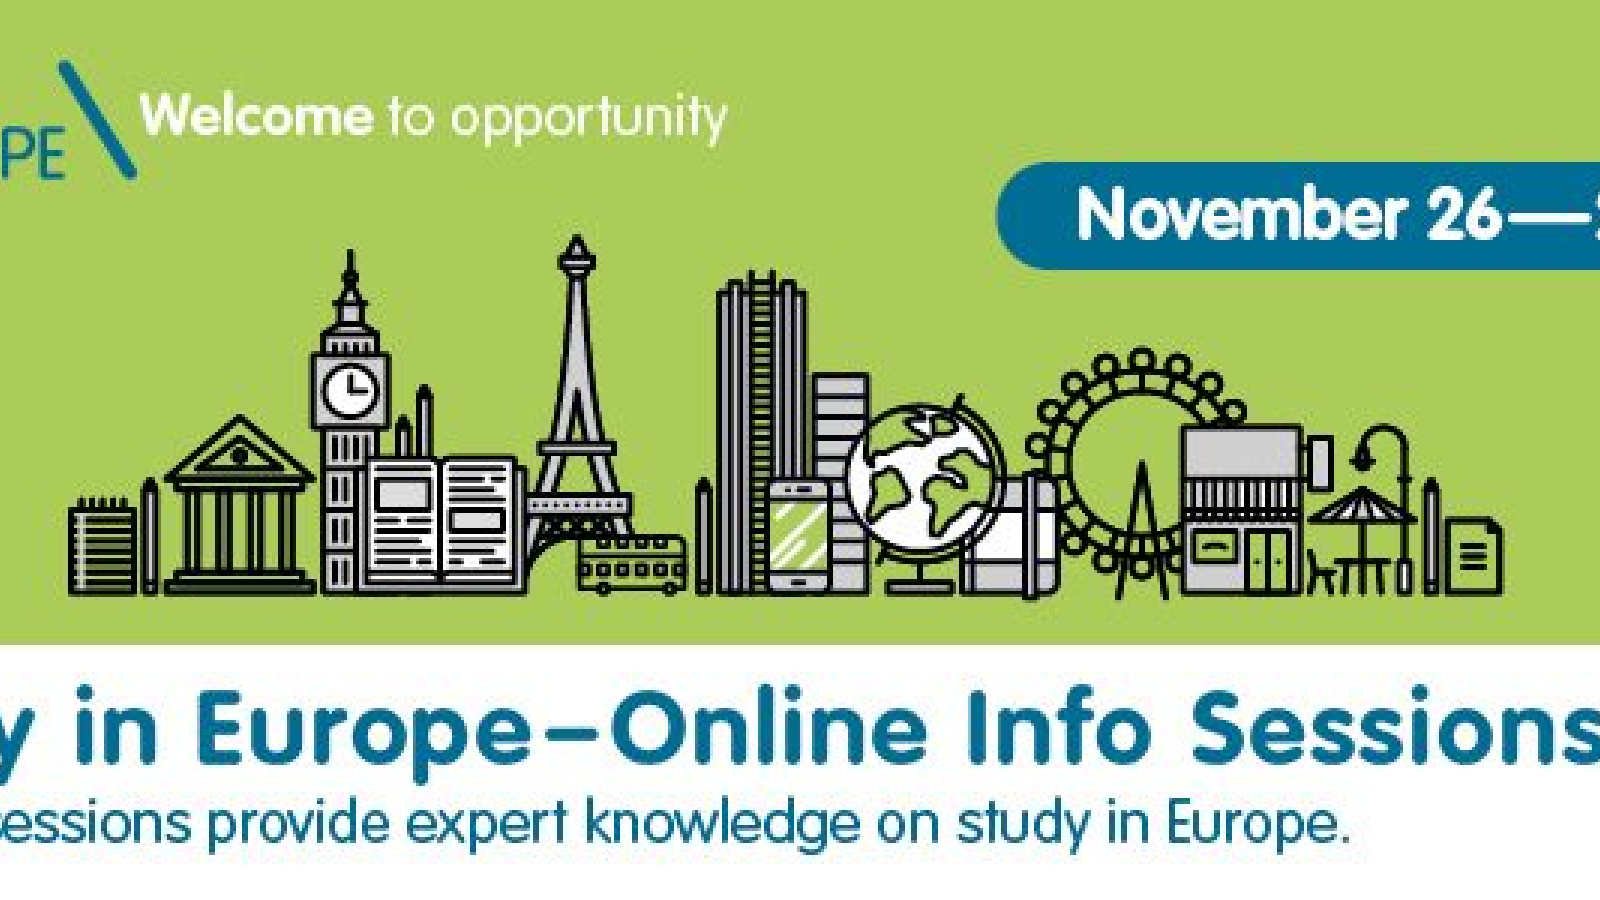 Study in Europe Webinar Series Africa 2019: join the online info sessions to learn about study options in Europe